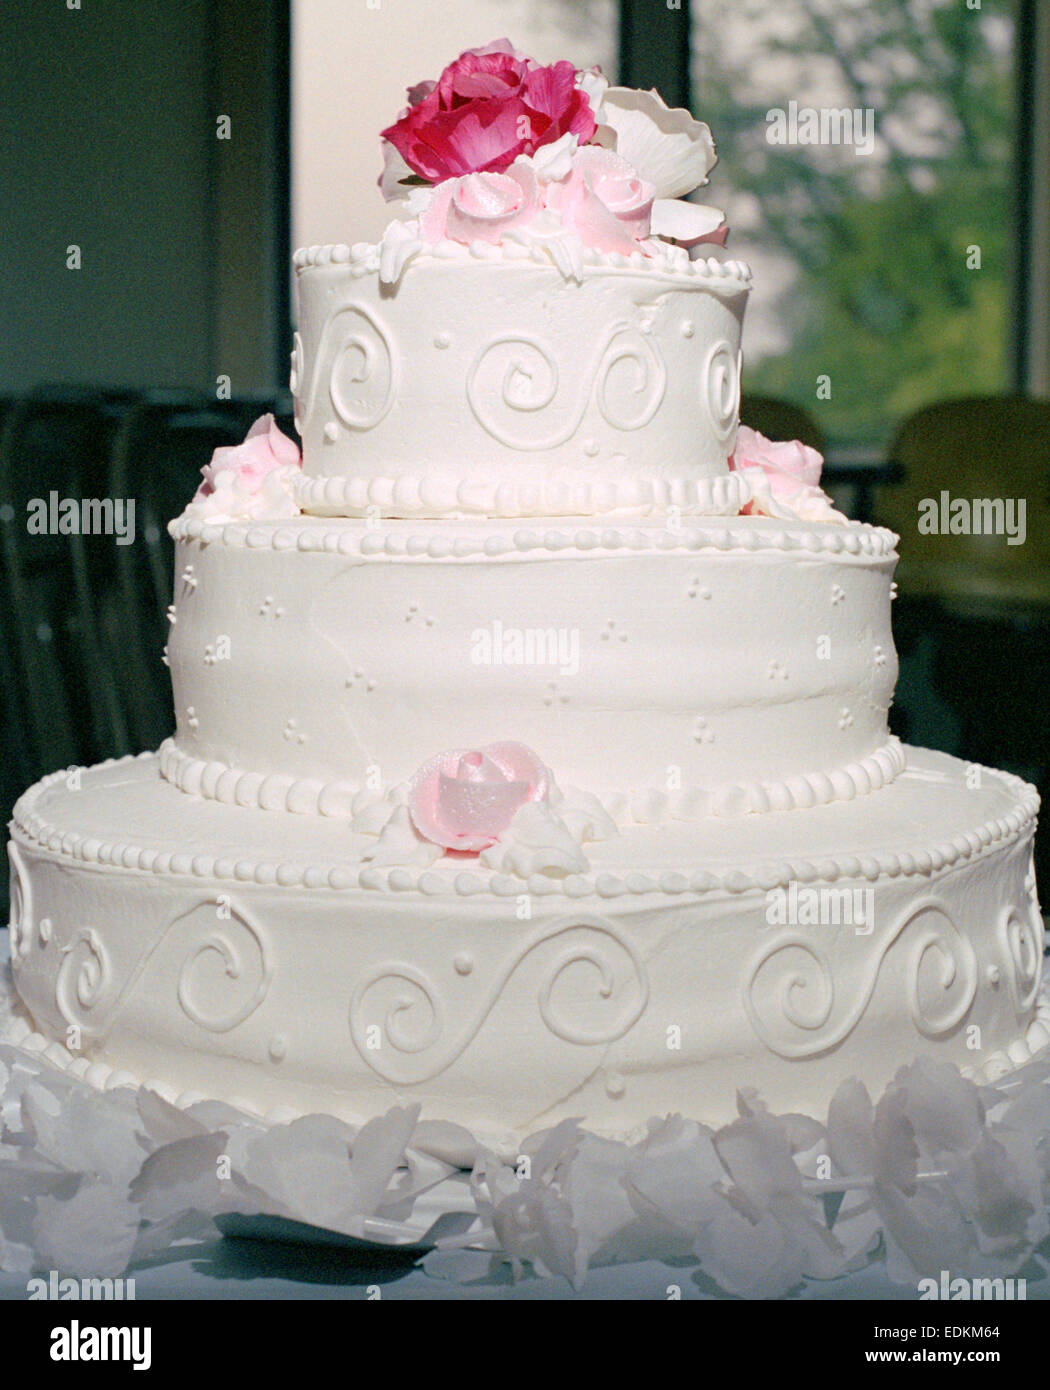 A 3 tier white wedding cake with pink roses Stock Photo: 77264940 ...